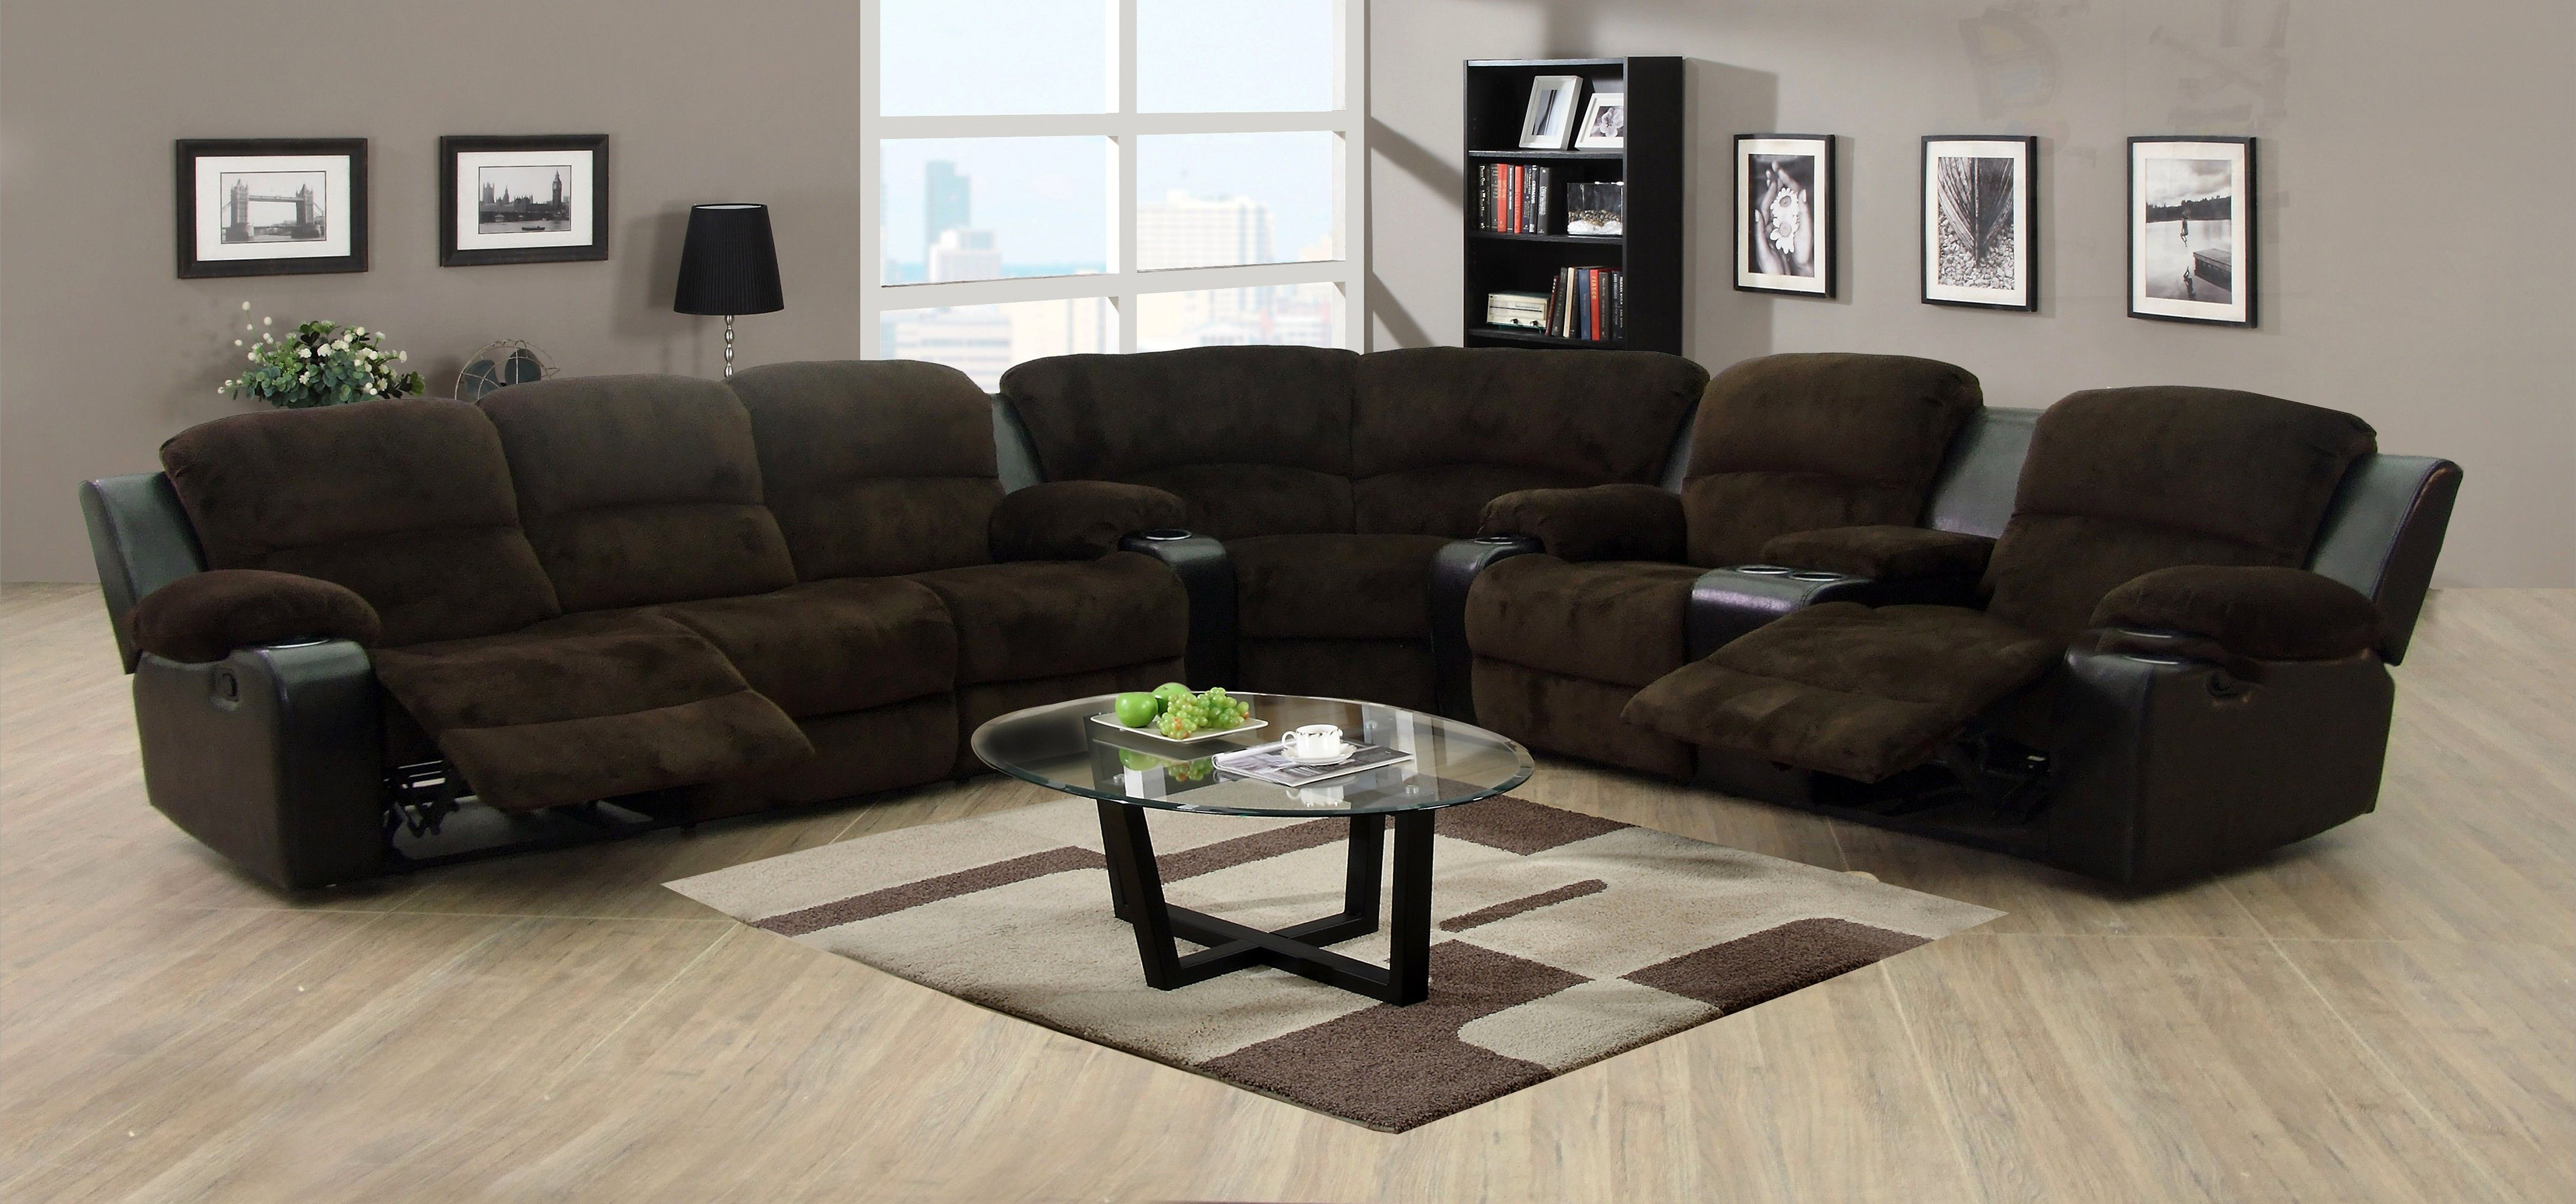 Nice Sectional Sofas With Recliners And Cup Holders Elegant